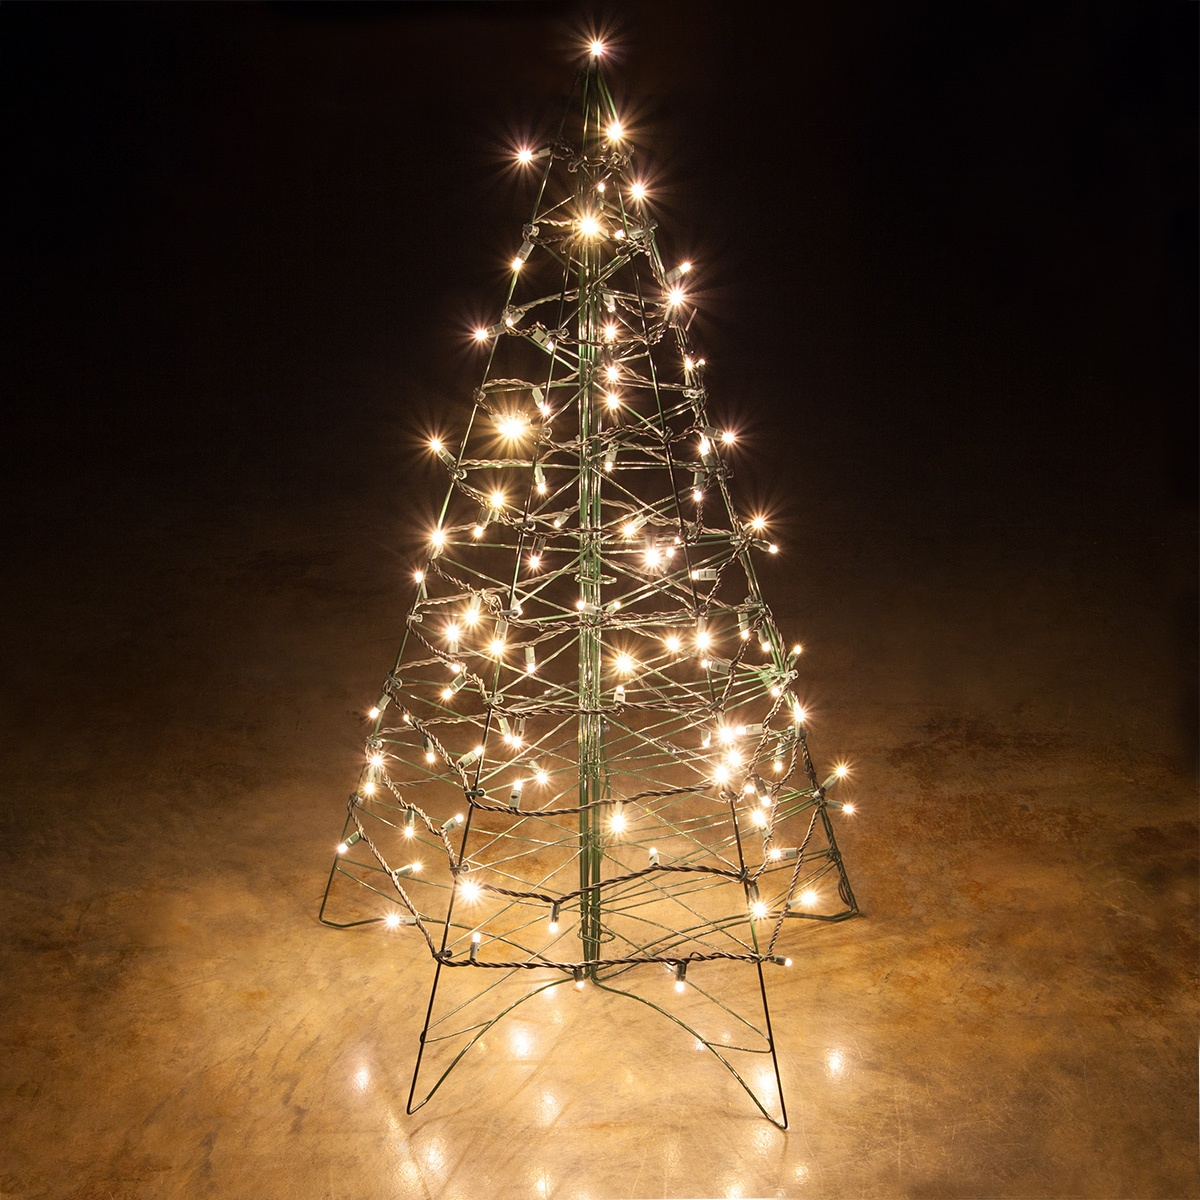 lighted warm white led outdoor christmas tree - Outdoor Christmas Trees